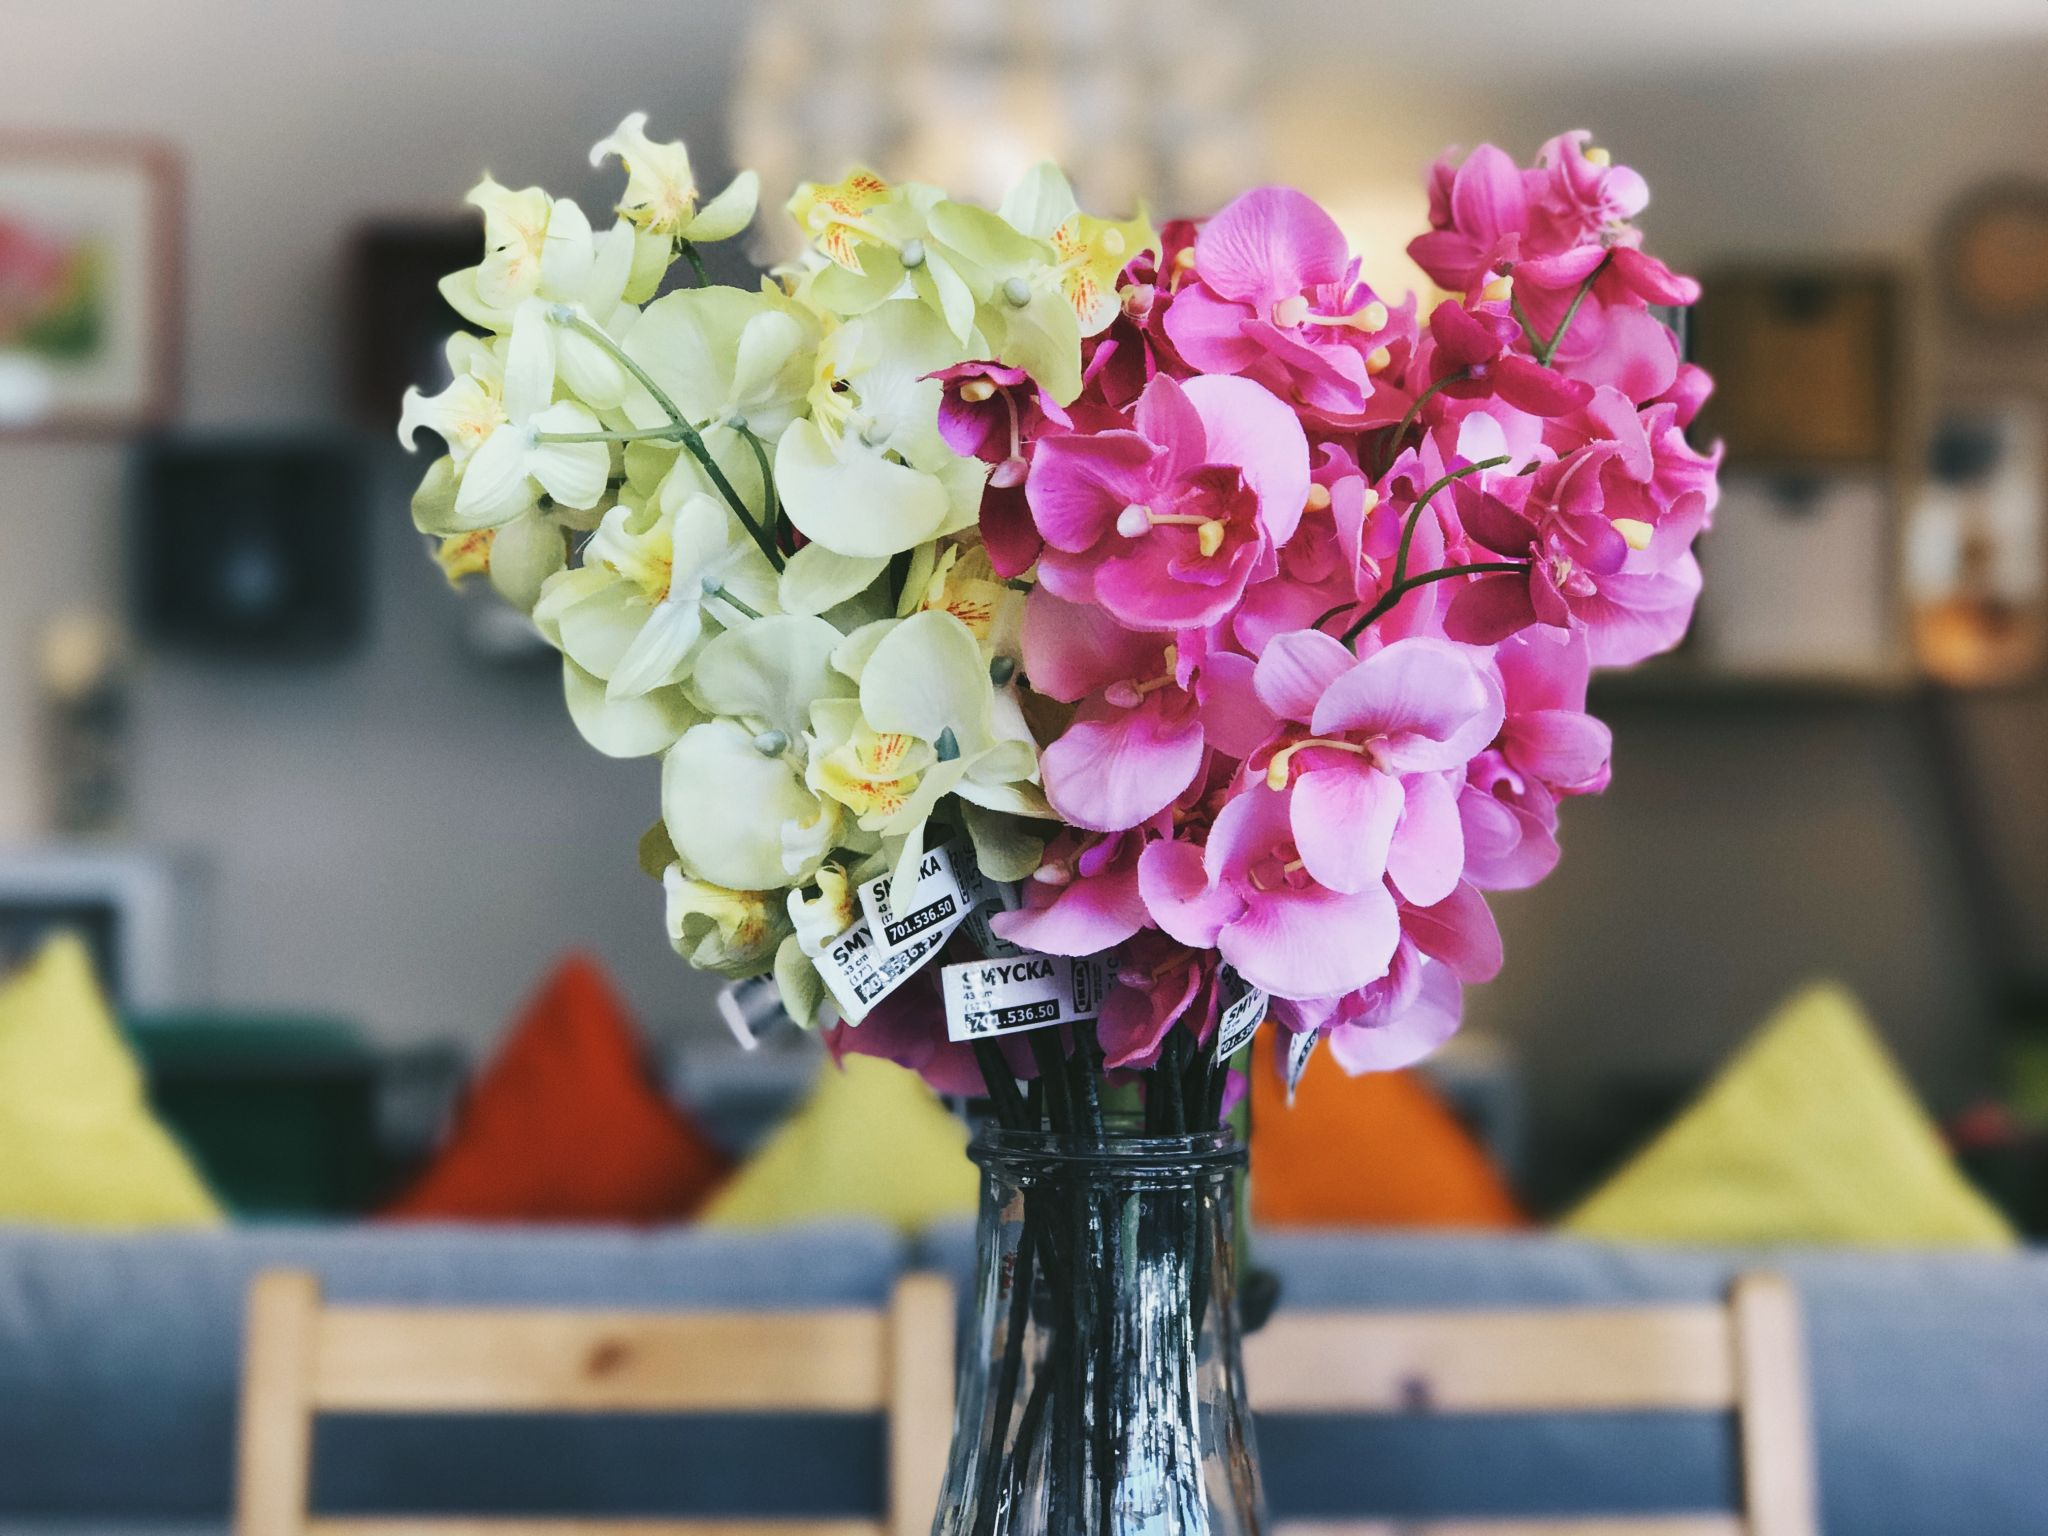 Quick Ways To Upgrade Your Home This Spring